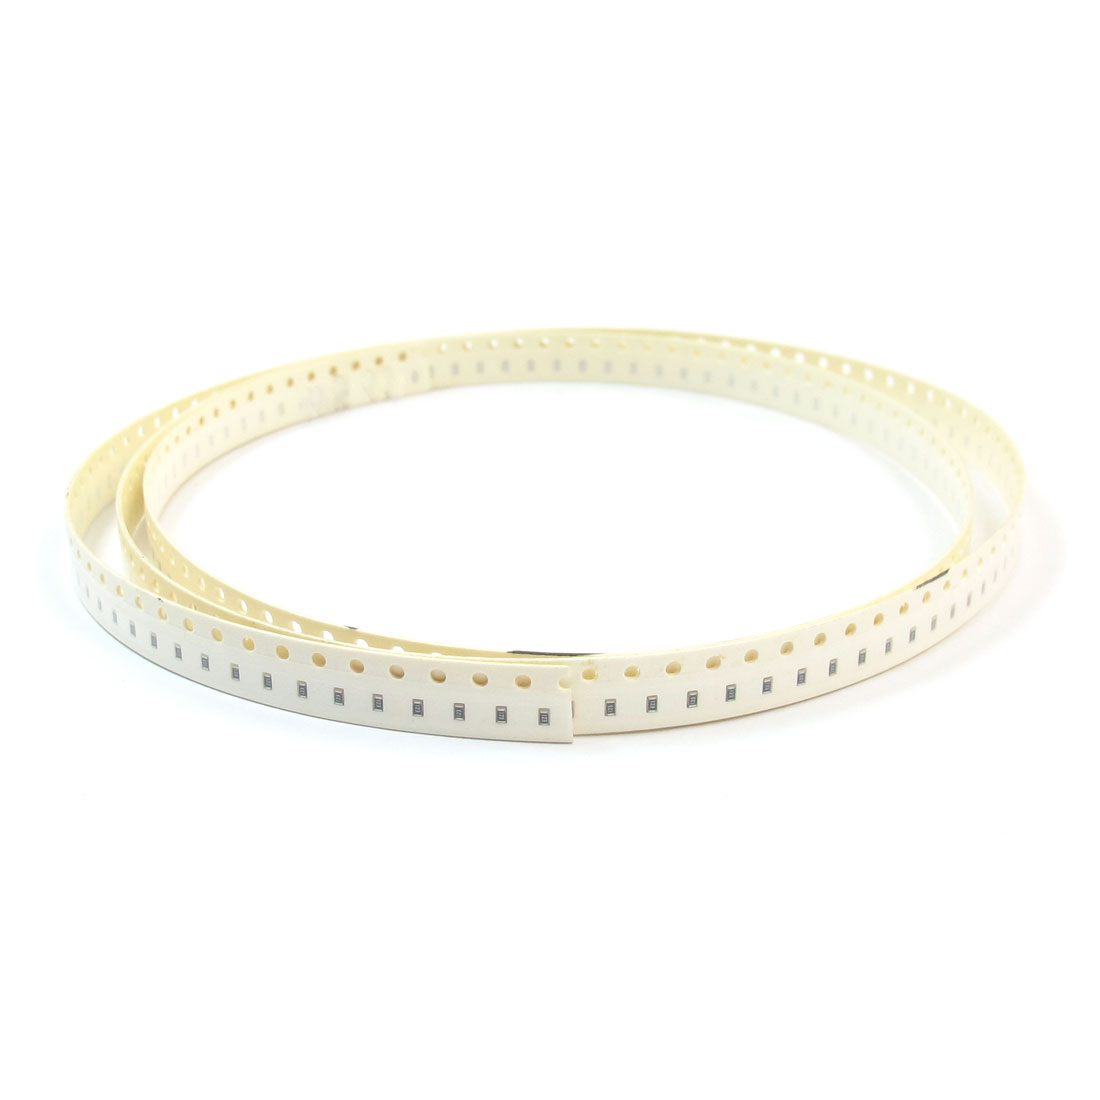 200 Pcs 0603 1608 750K Ohm Resistance 1/16W Watt 5% Tolerance Surface Mounted Film SMT SMD Chip Fixed Resistors Strip